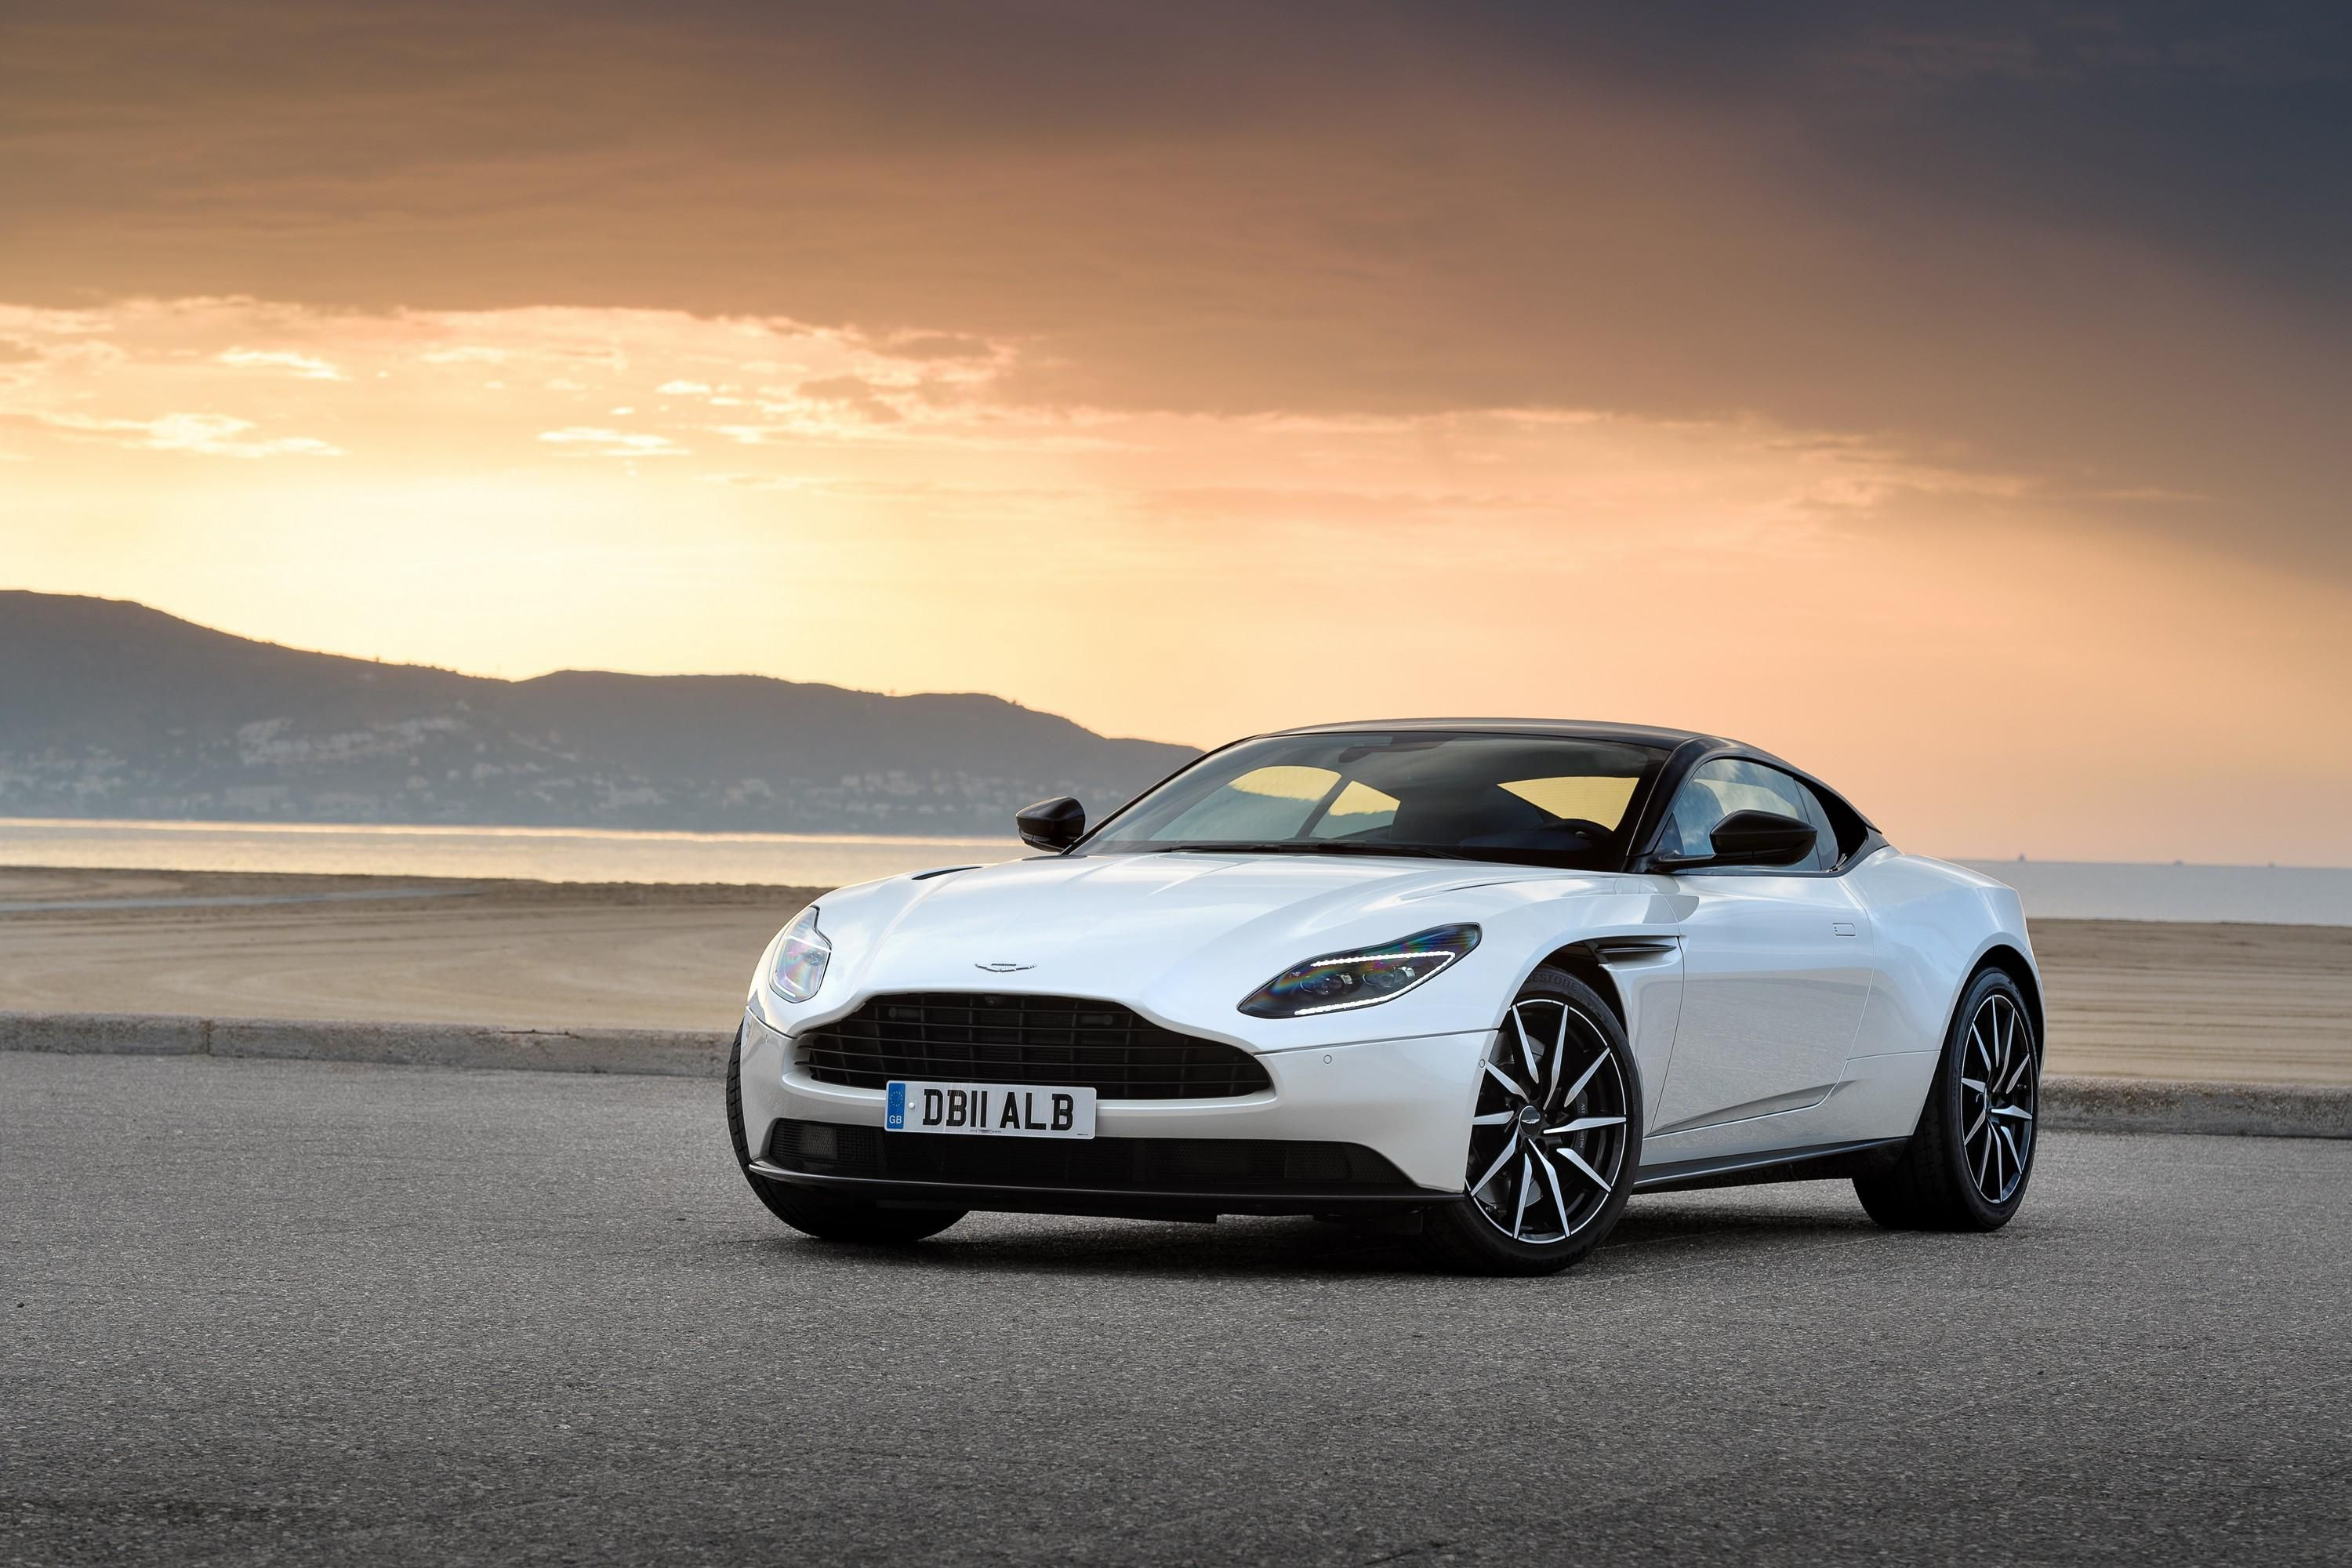 Aston s latest DB11 has fewer cylinders but all the great looks